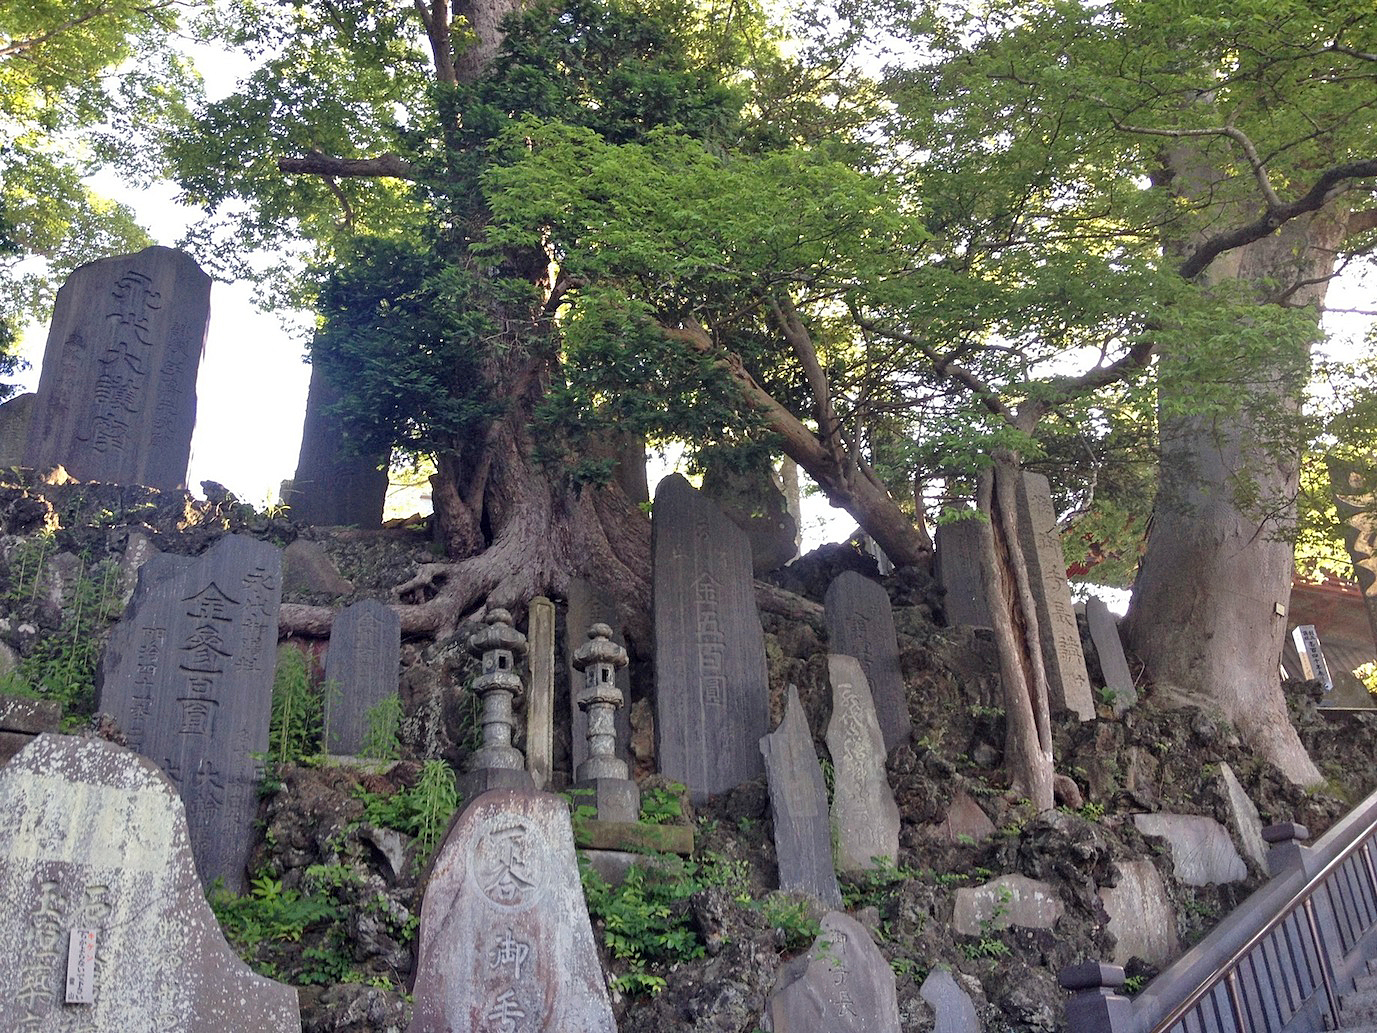 These must be headstones, but they are HUGE.  The temple grounds are peppered with them.